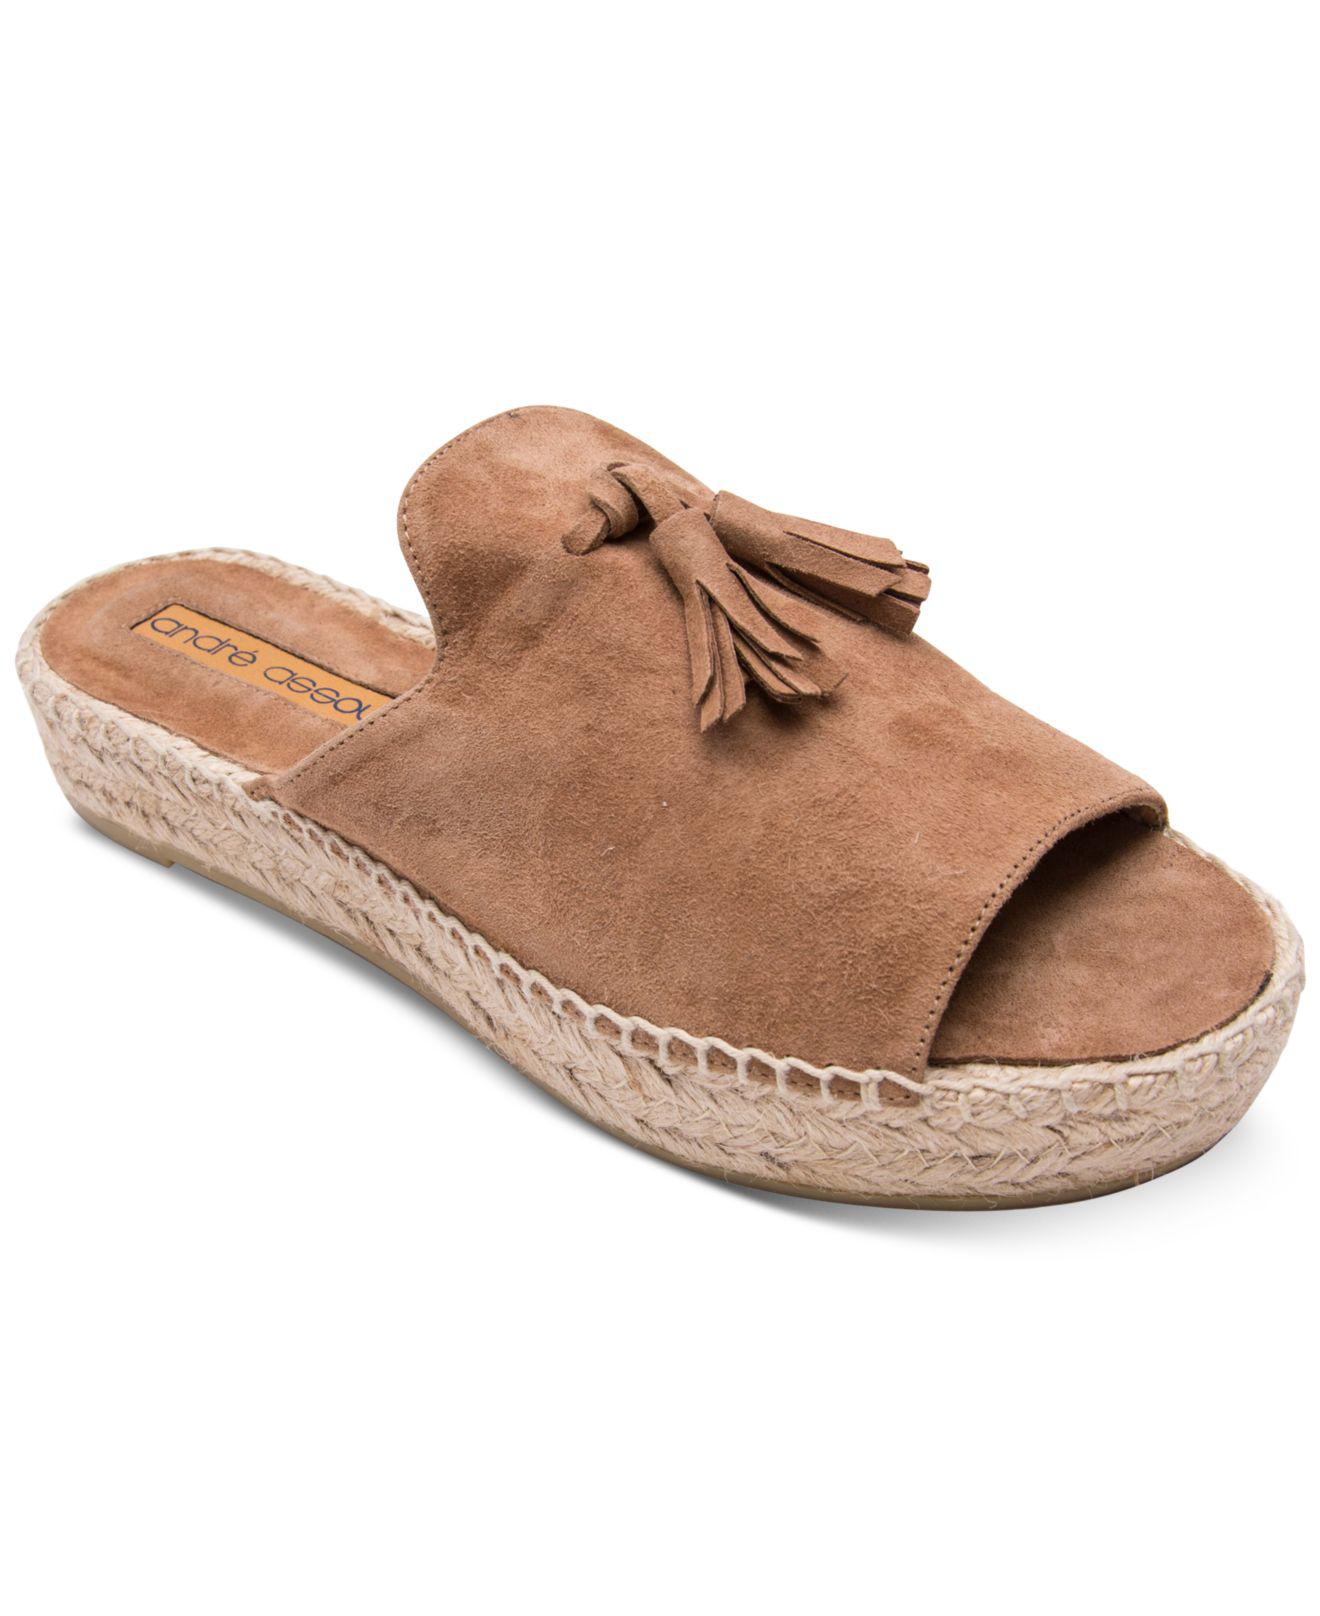 92f3f6d5cd94 Lyst - Andre Assous Cameron Flat Sandals in Brown - Save 1%